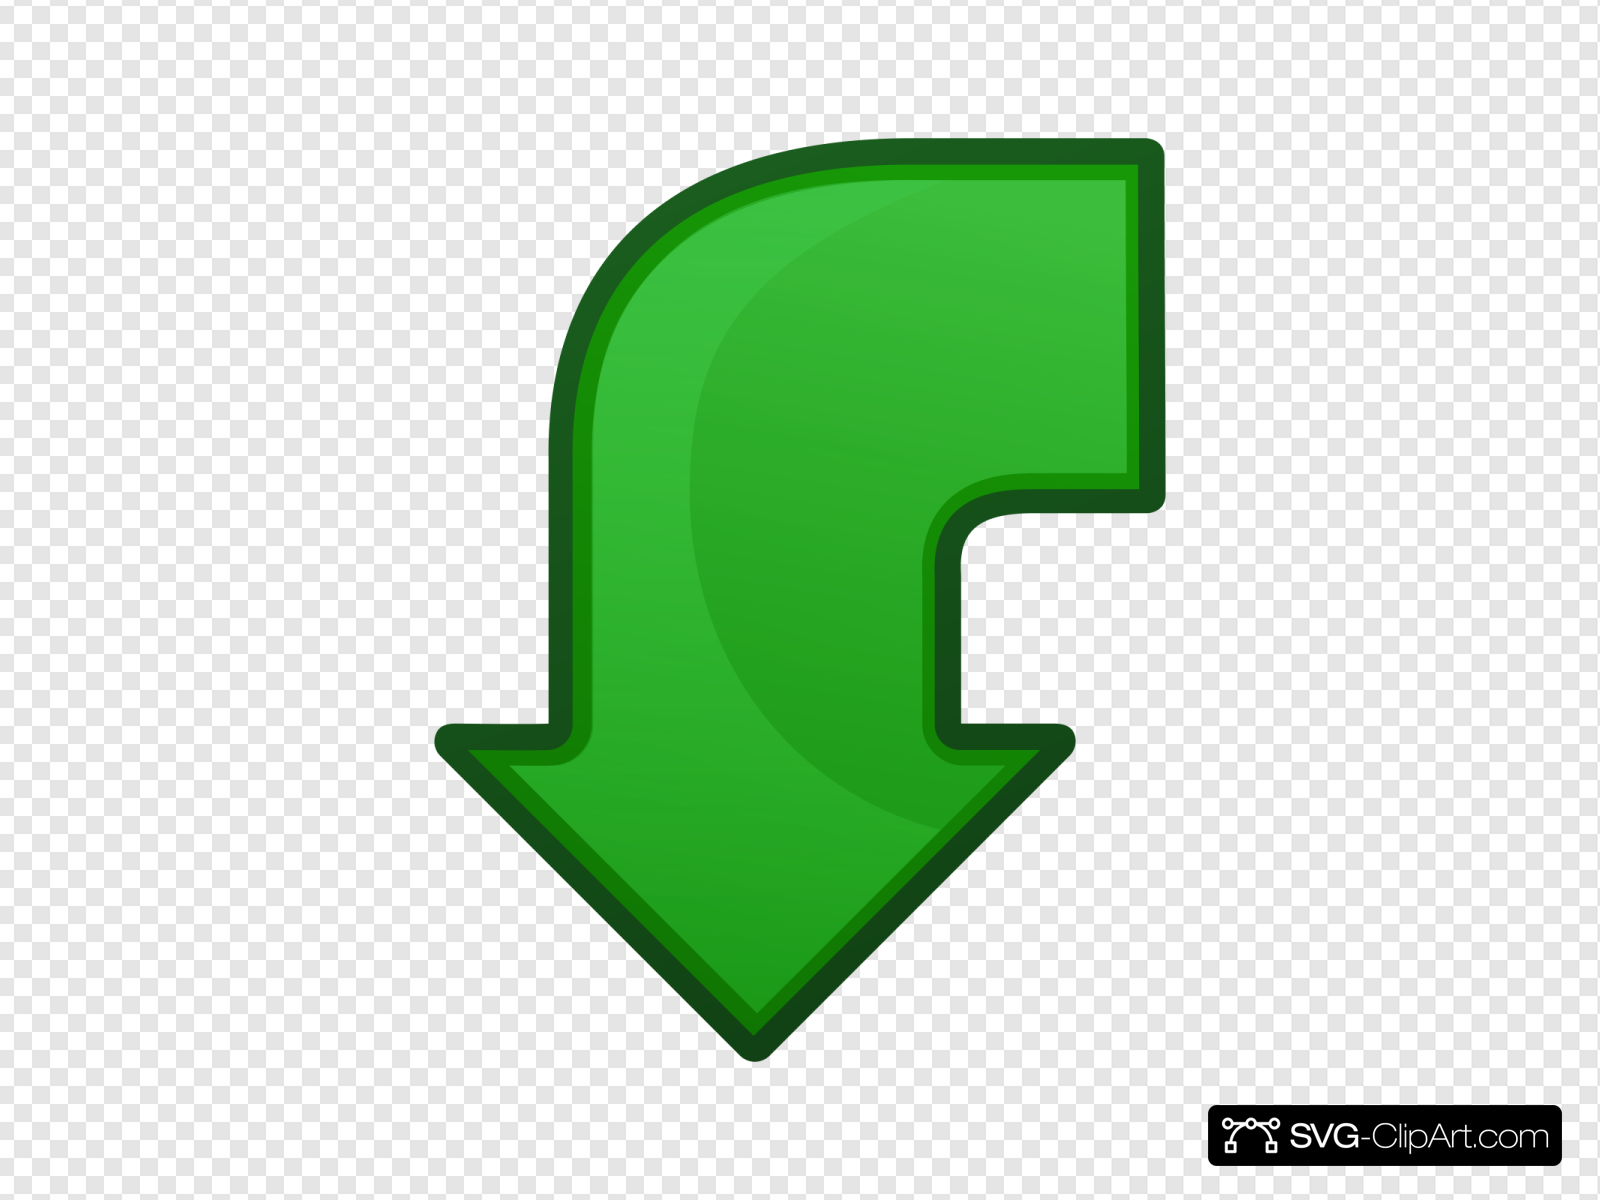 Arrow Go Back Clip art, Icon and SVG.